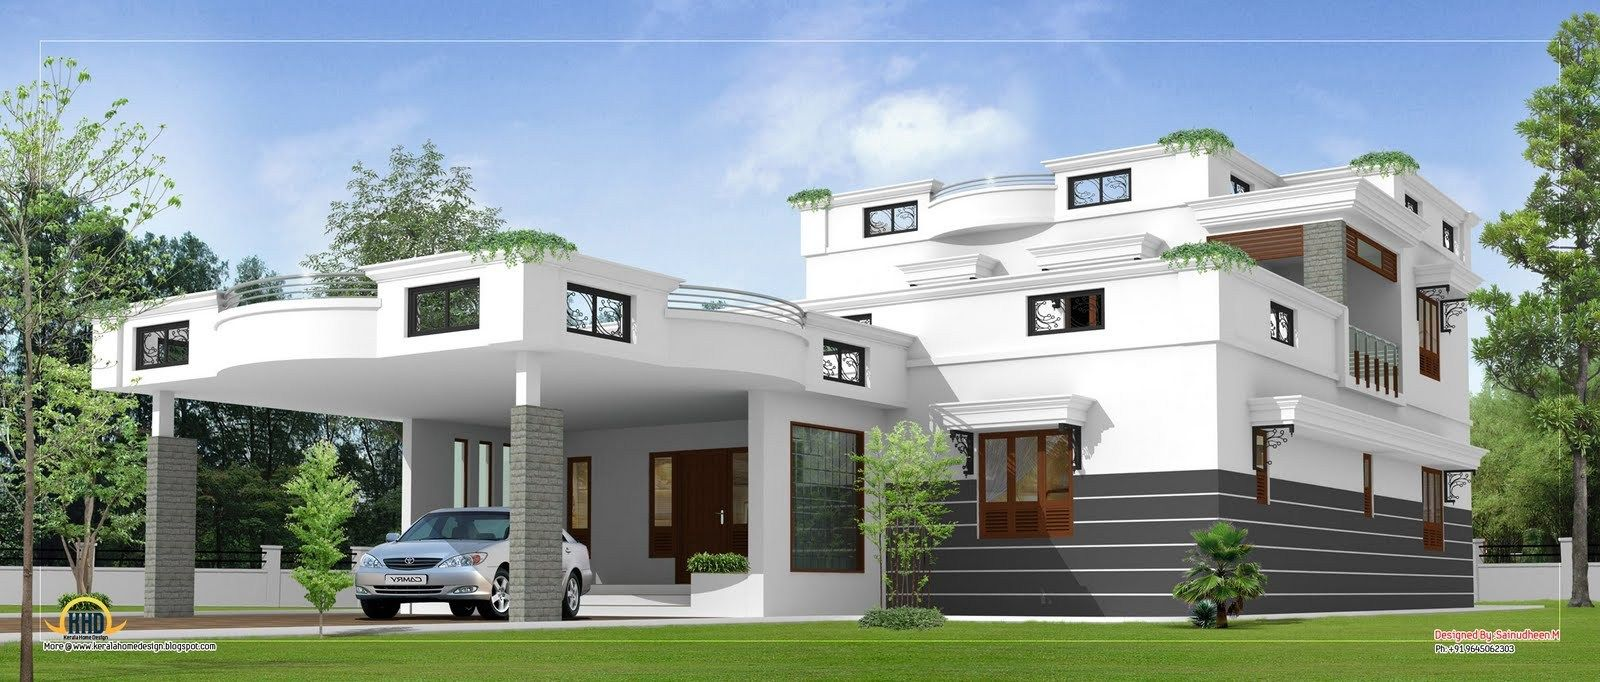 Contemporary Home Designs Home Design Ideas Simply Elegant Home Designs  Unique Small House Plan